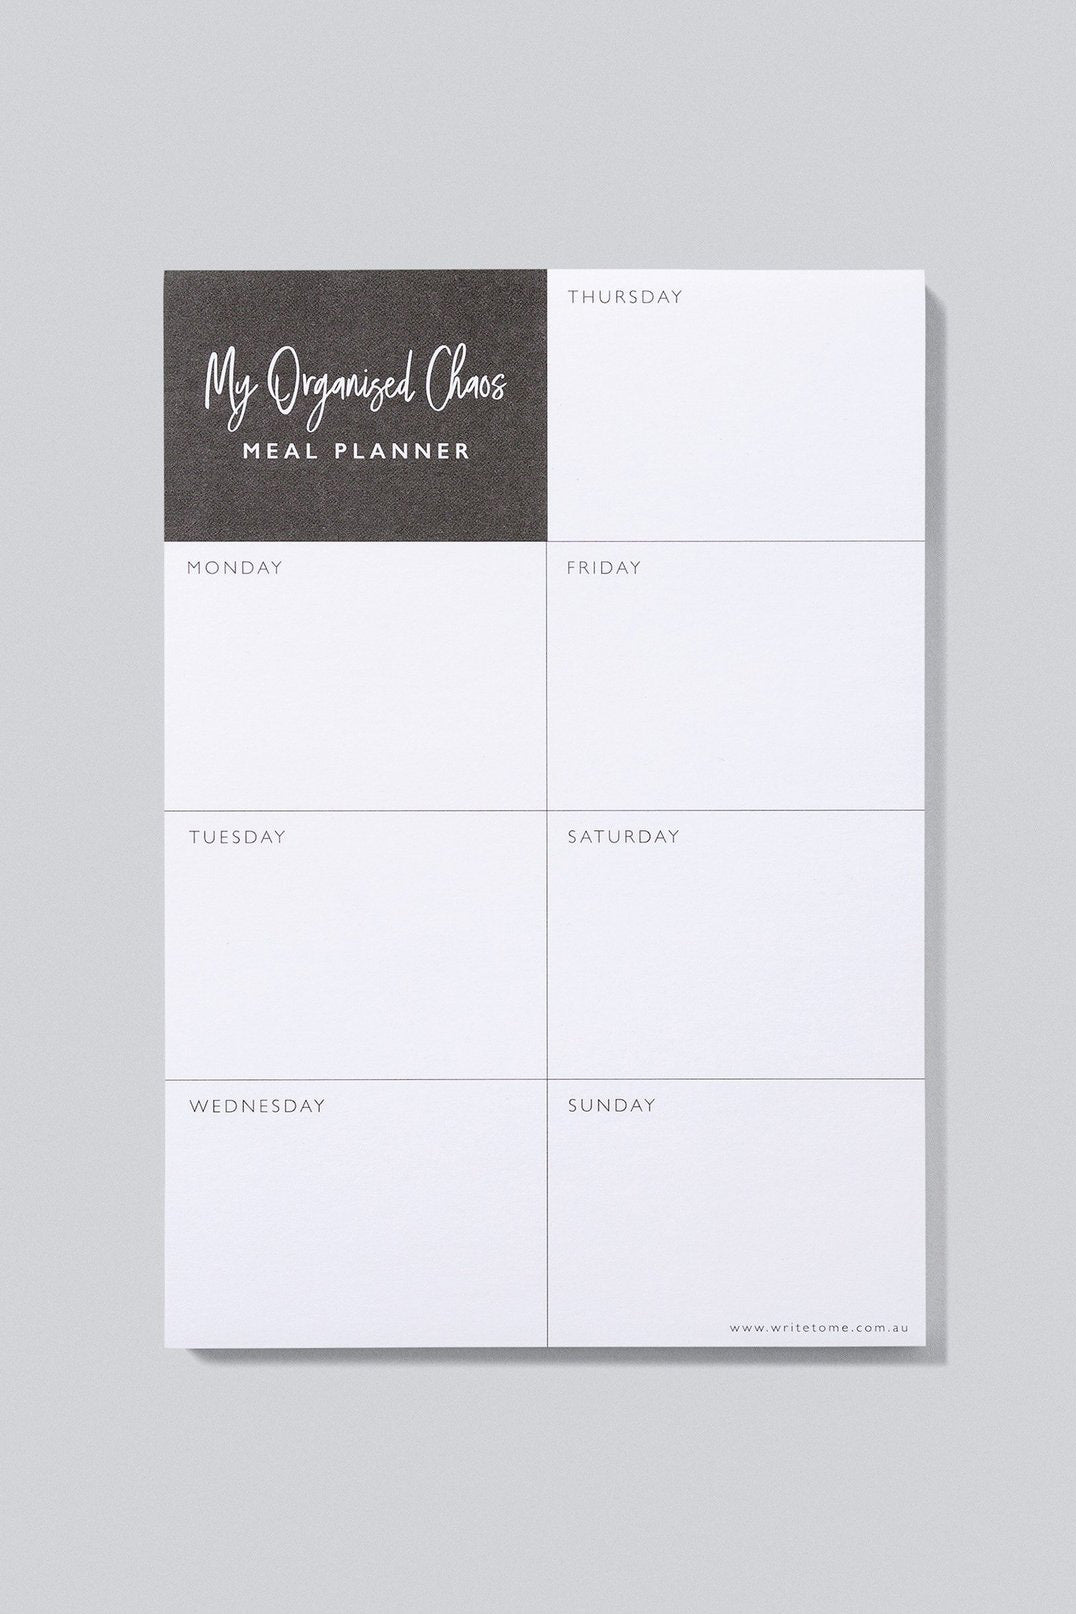 Meal Planner - My Organised Chaos